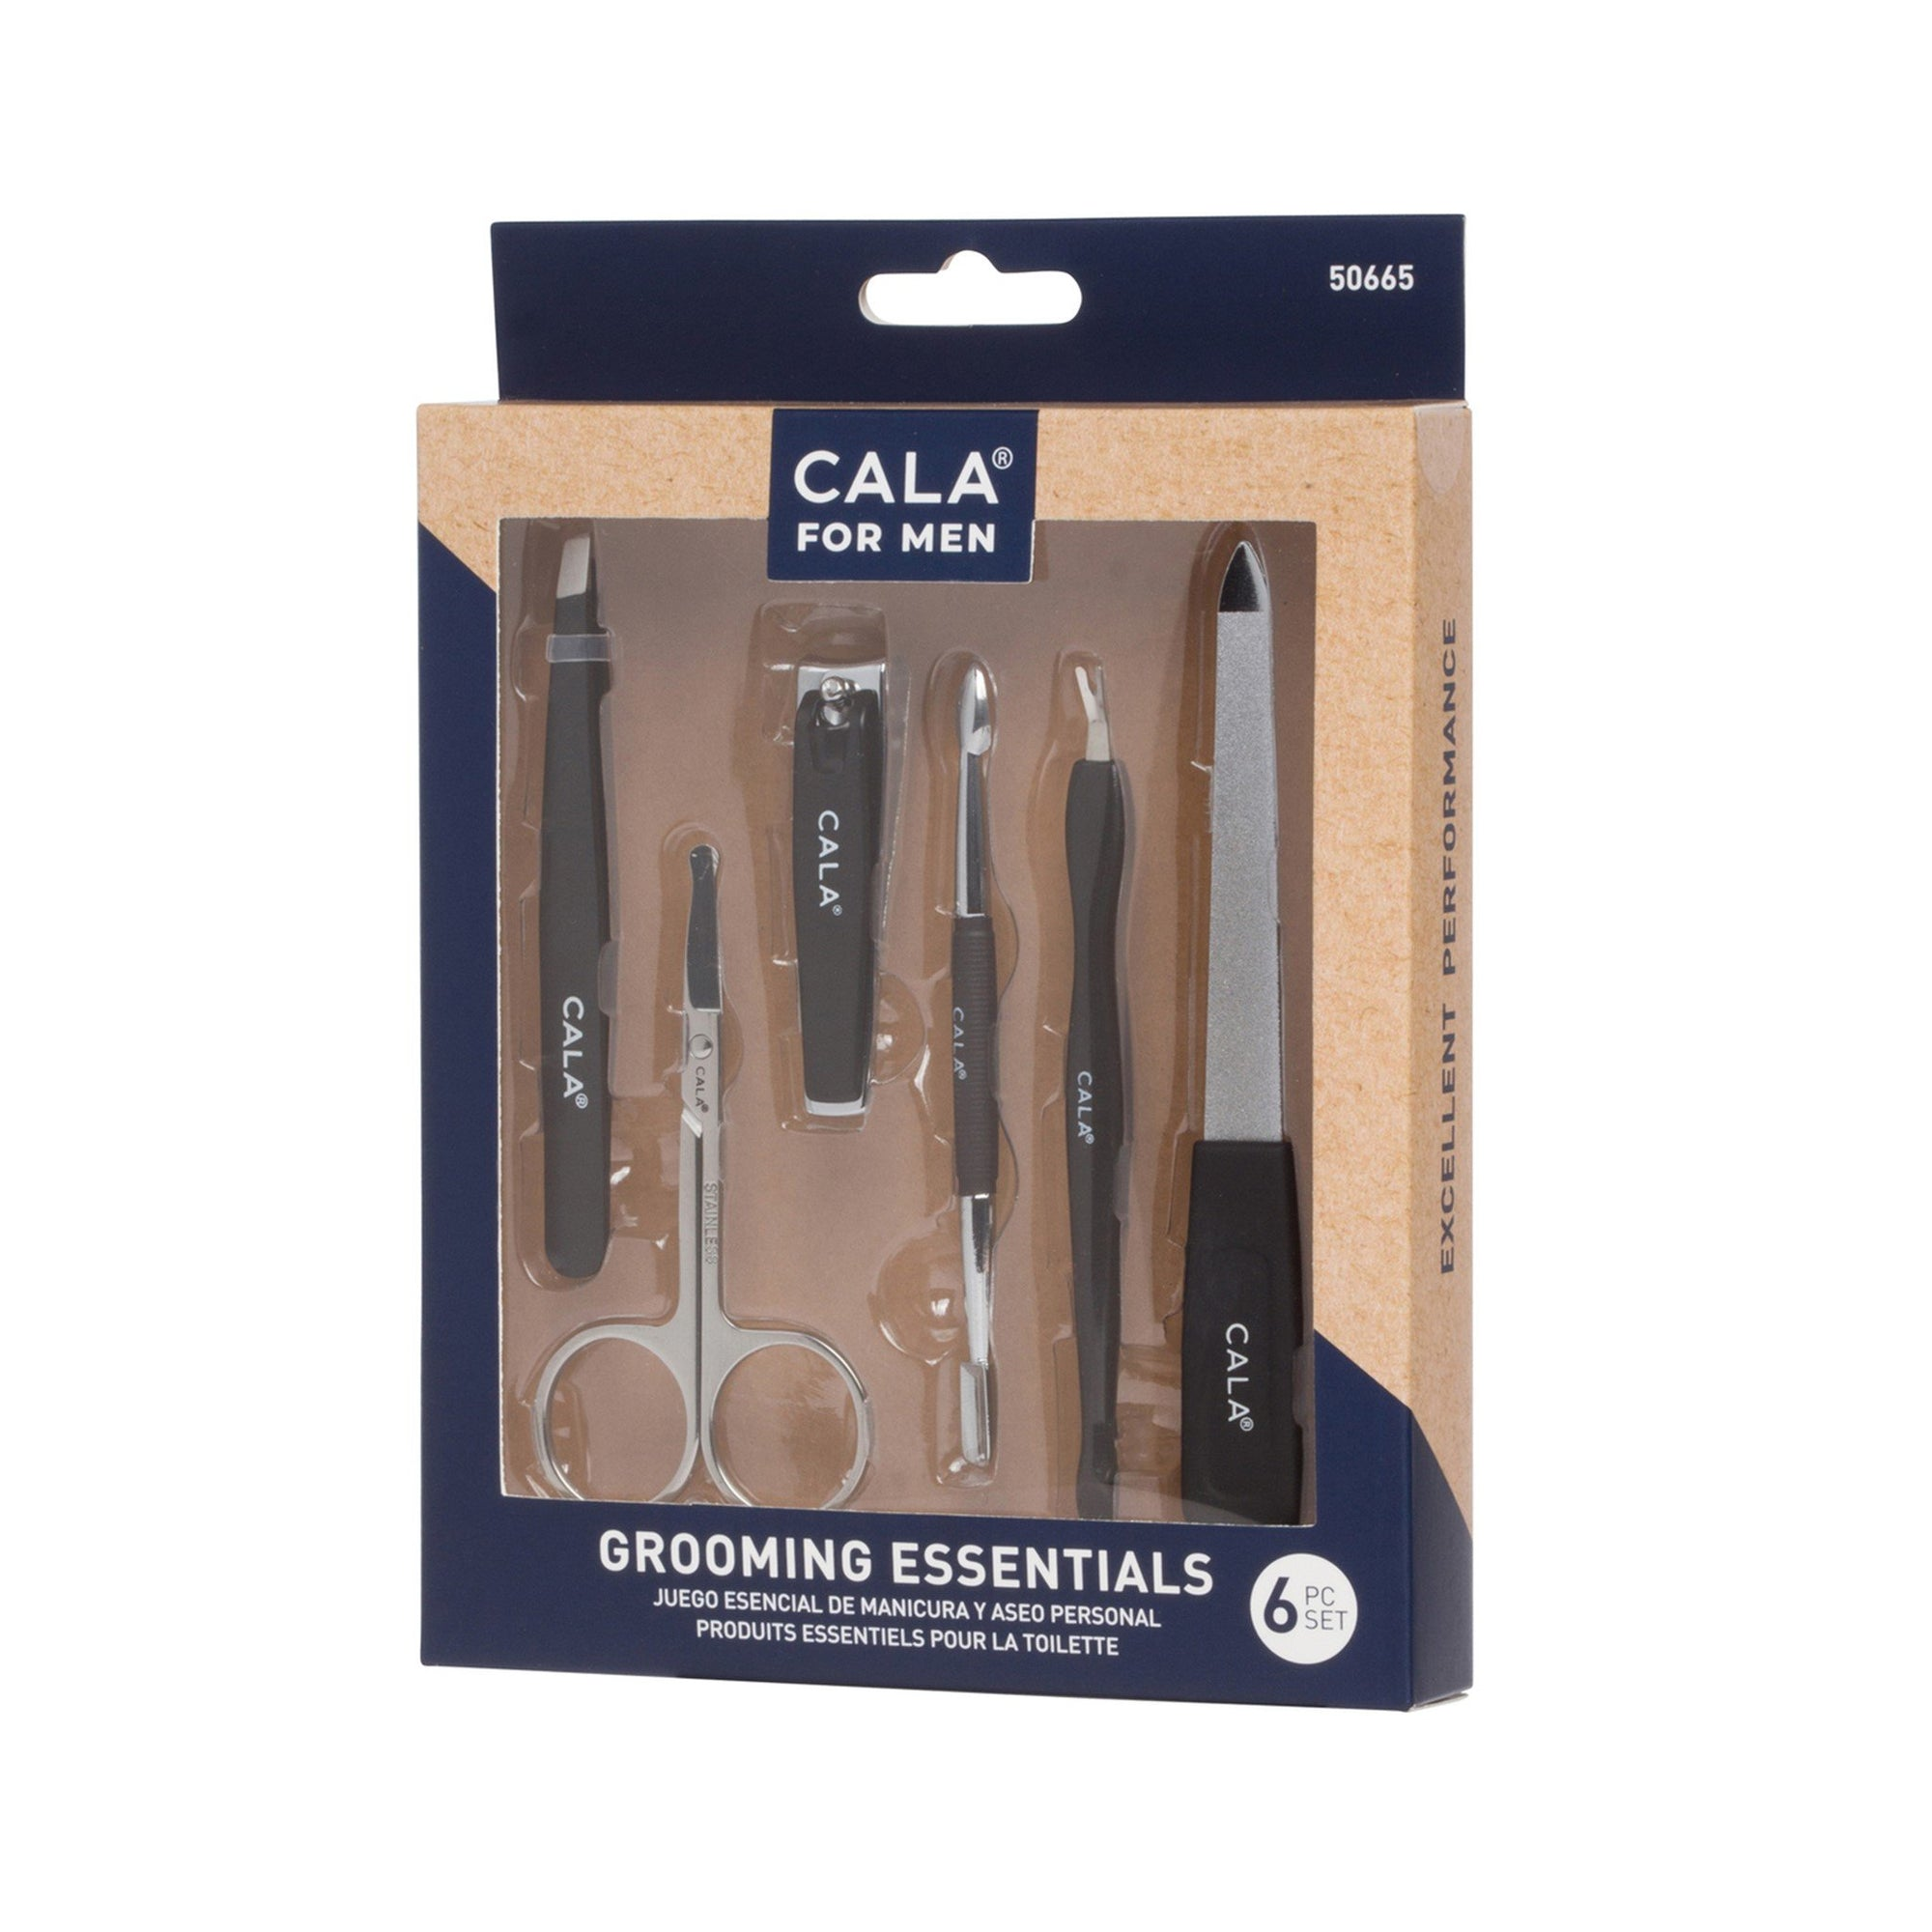 Cala Men Grooming Essentials Set 6pk